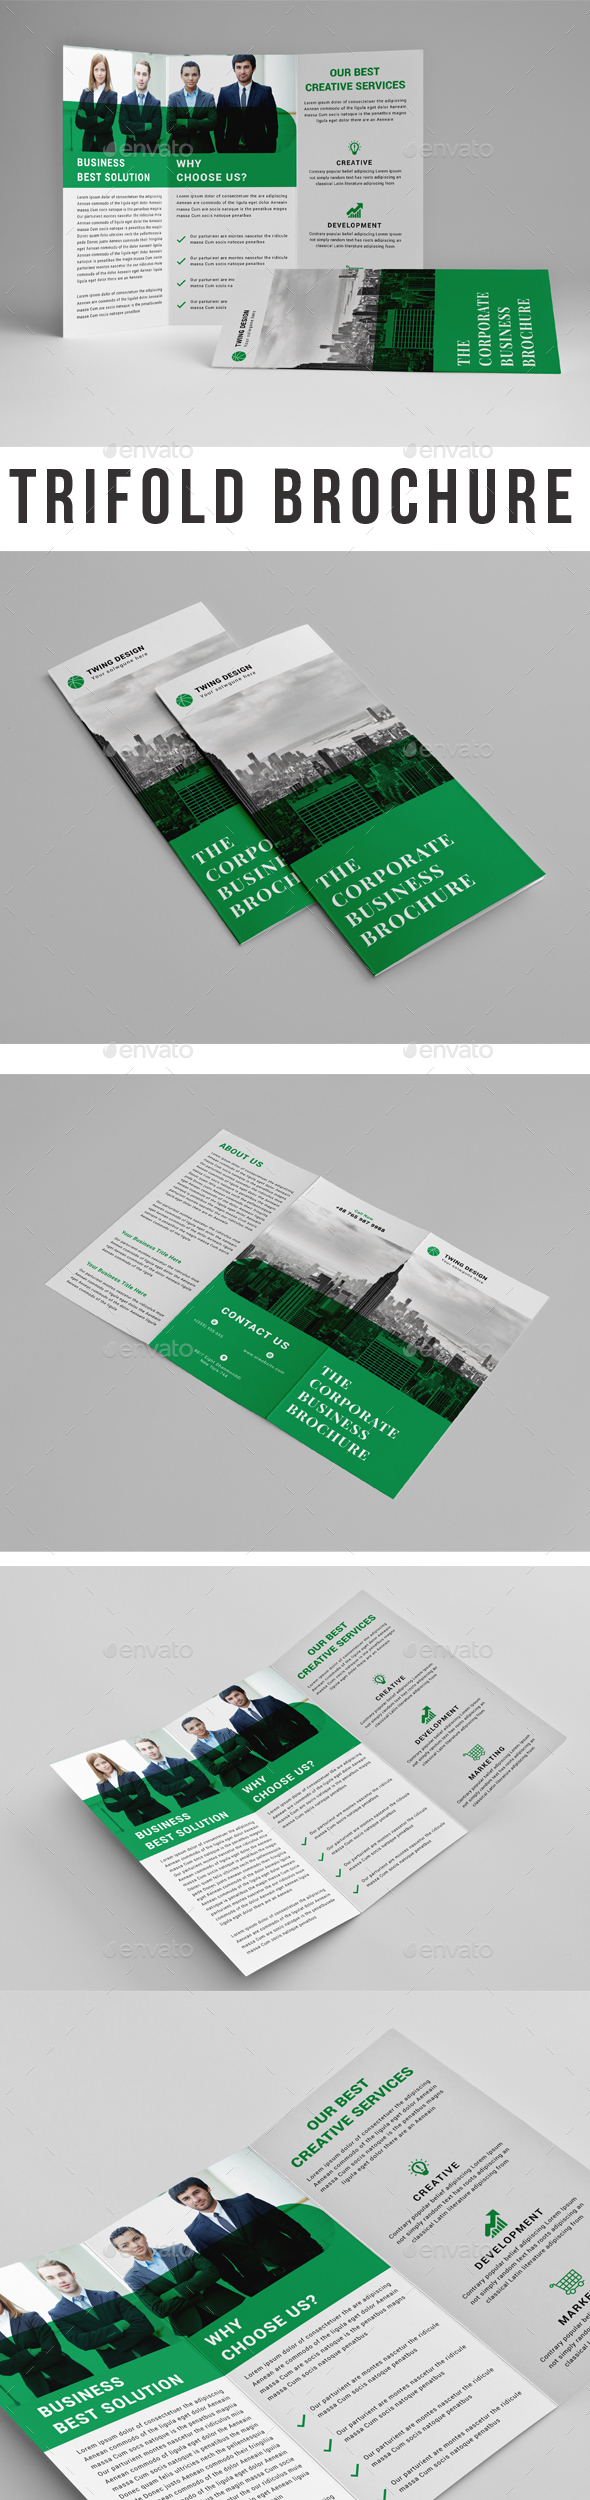 GraphicRiver Corporate Trifold Brochure 21129754